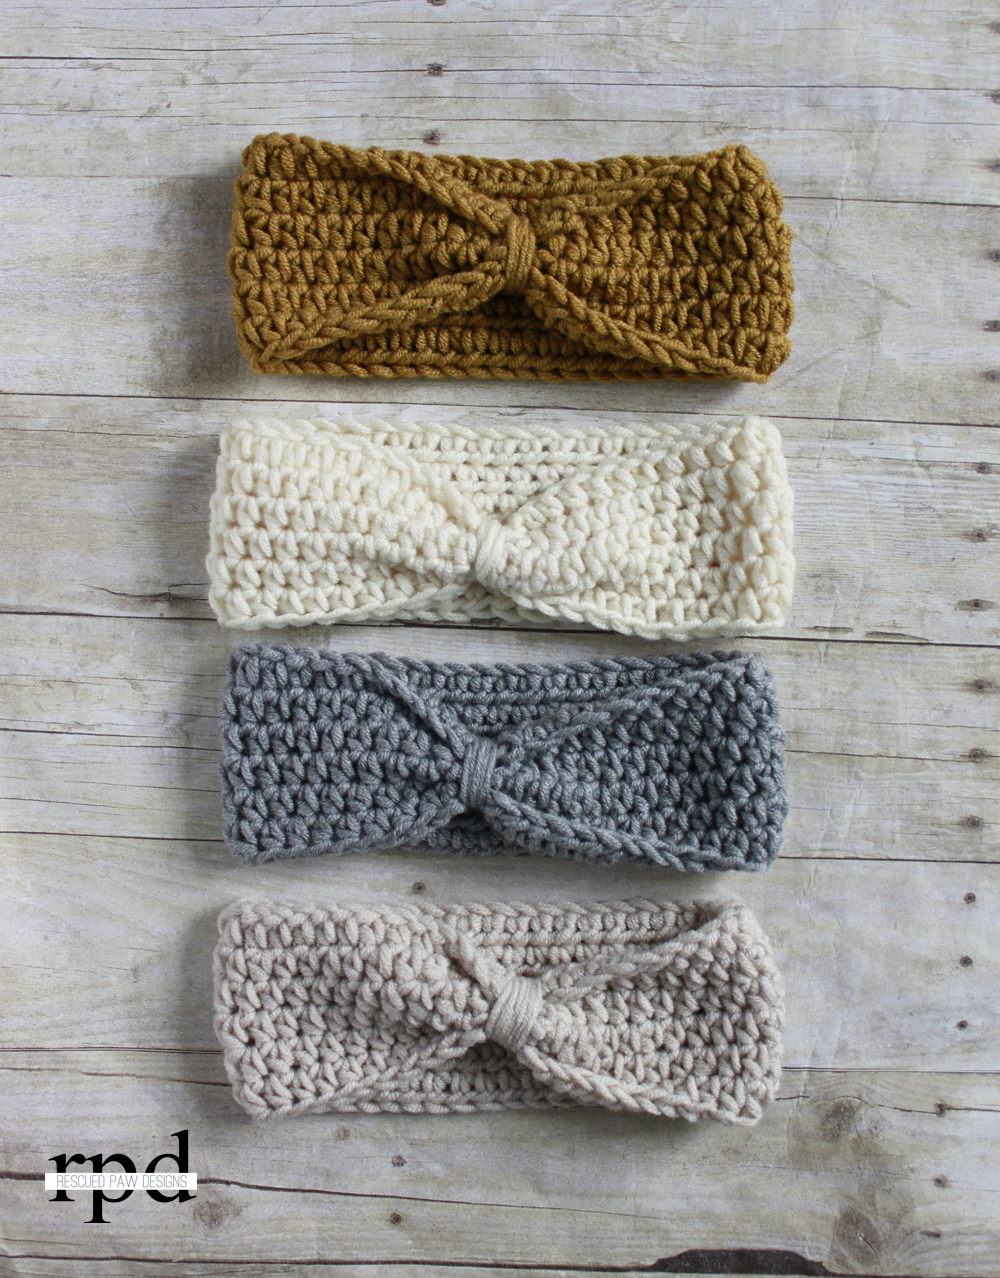 Knotted headband crochet pattern multiple sizes headband knotted headband crochet pattern multiple sizes bankloansurffo Image collections